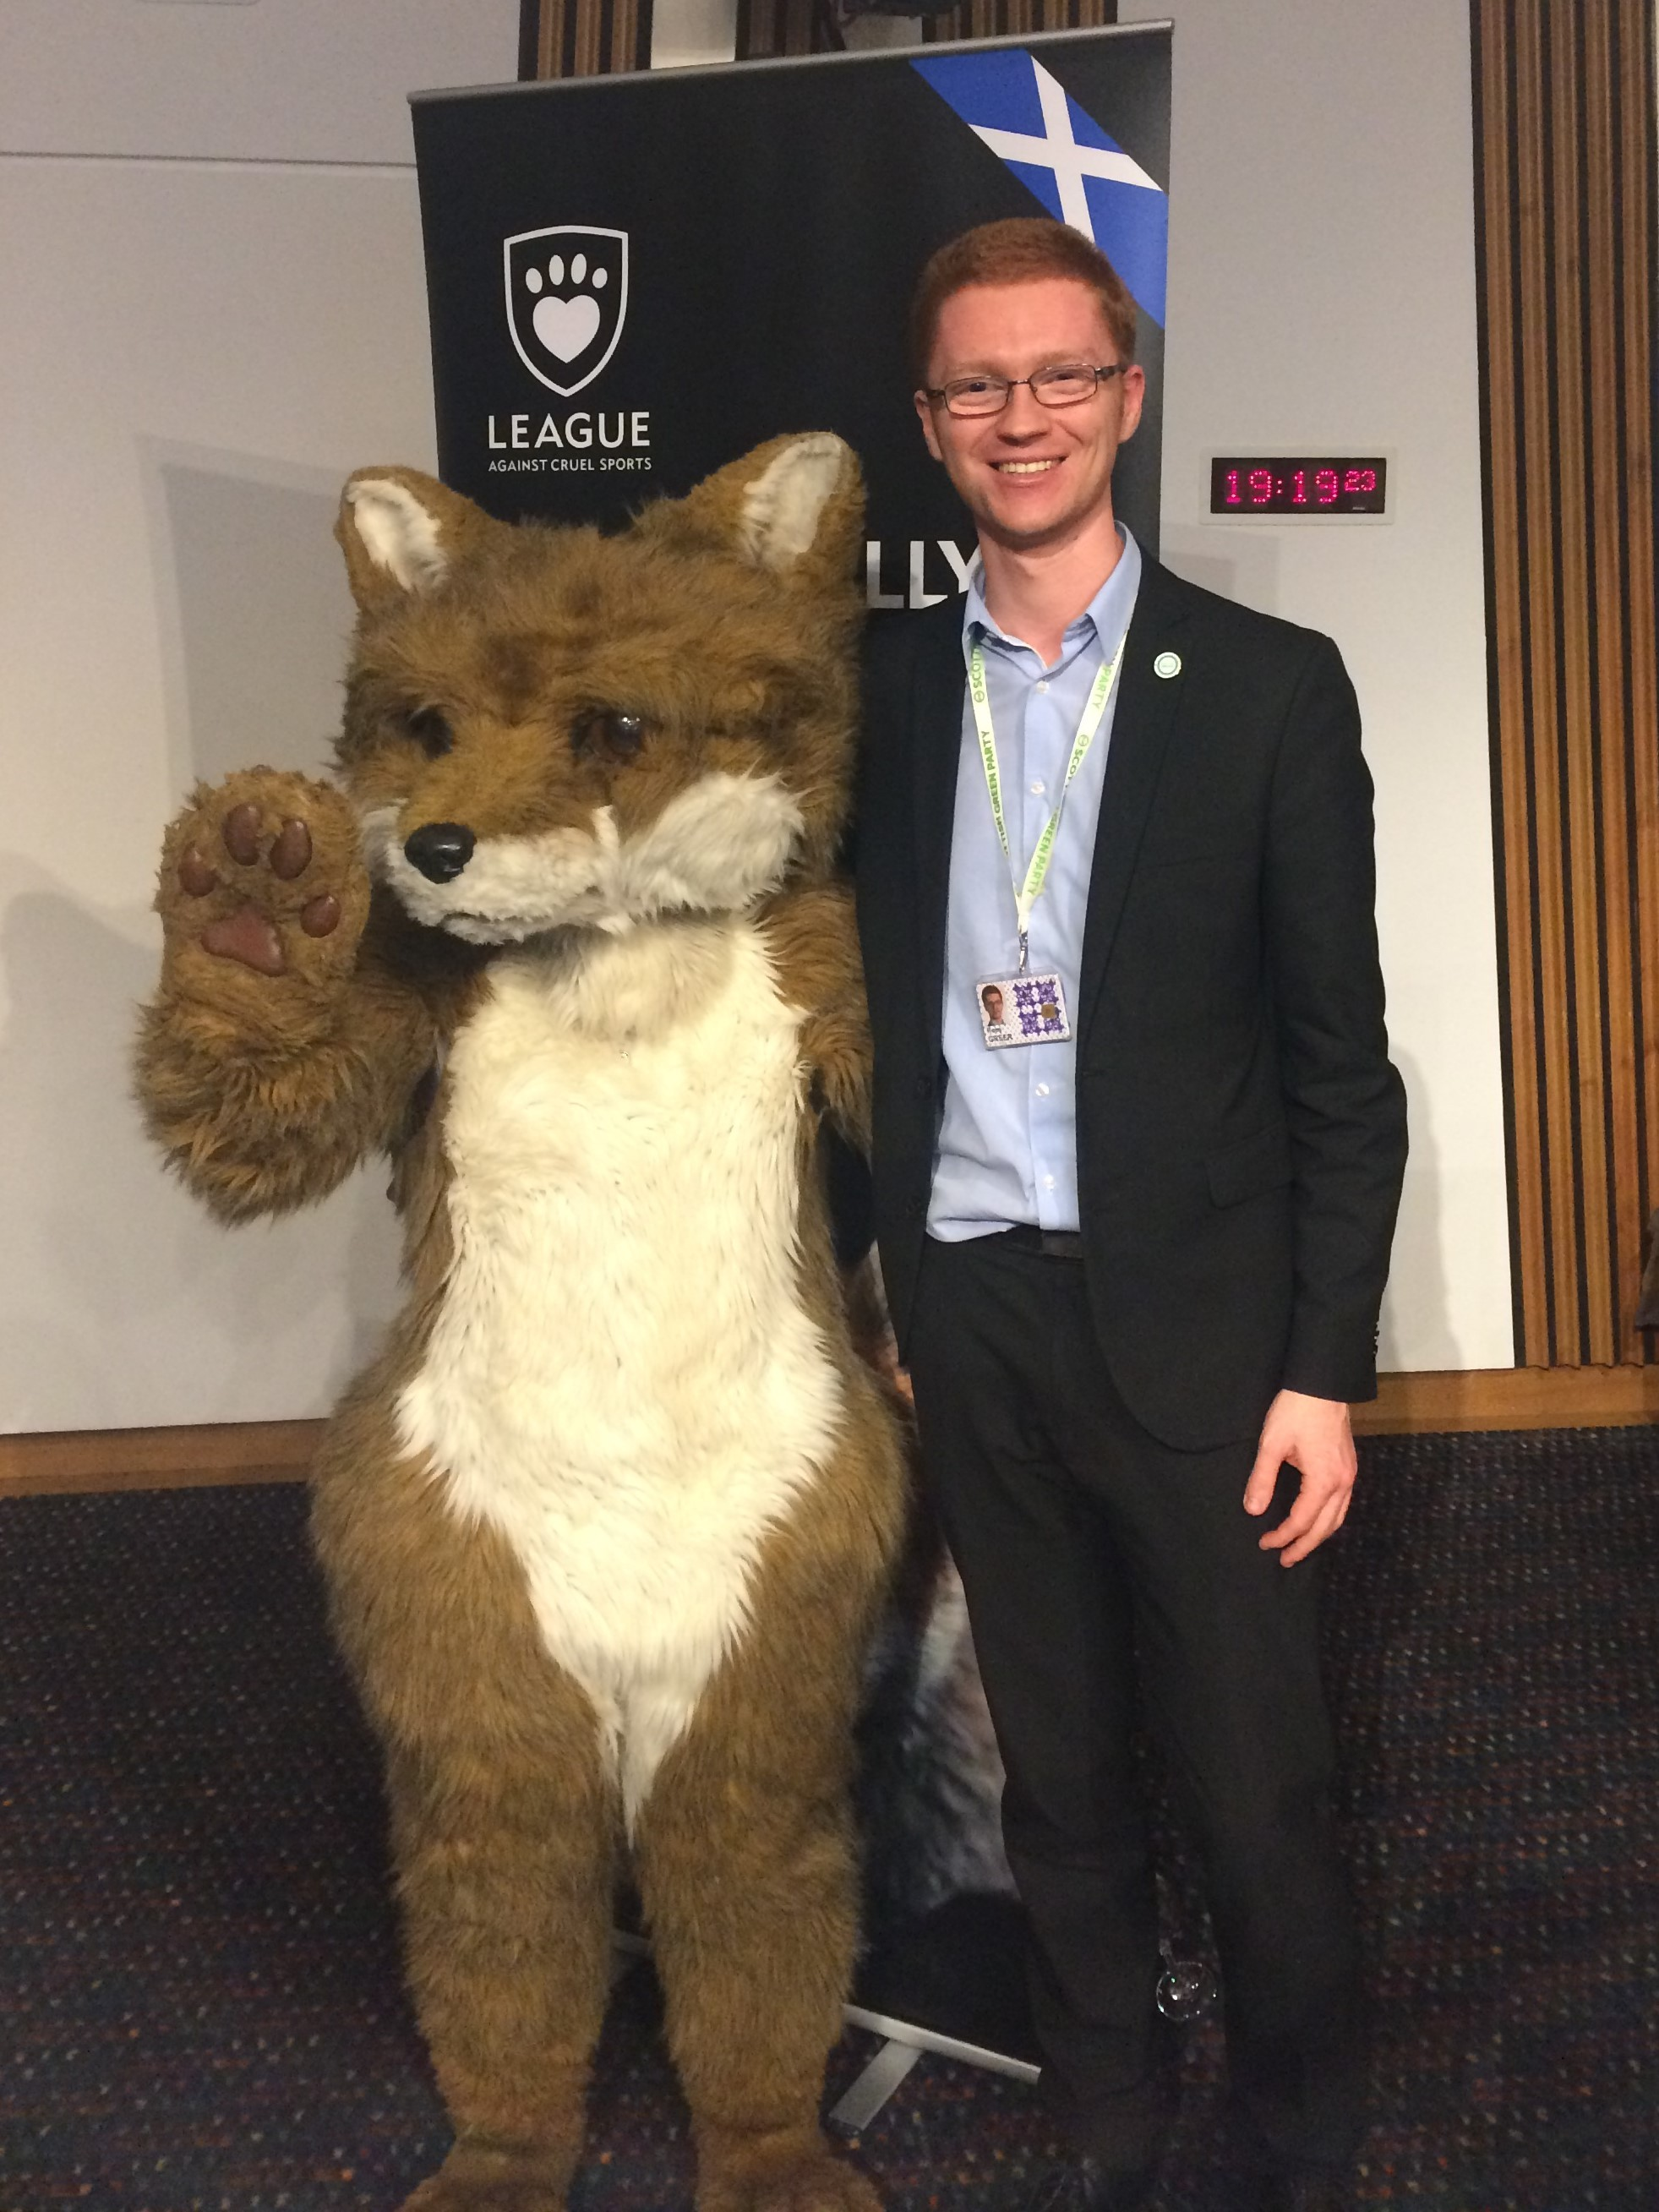 Ross Greer MSP supports a complete ban on fox hunting